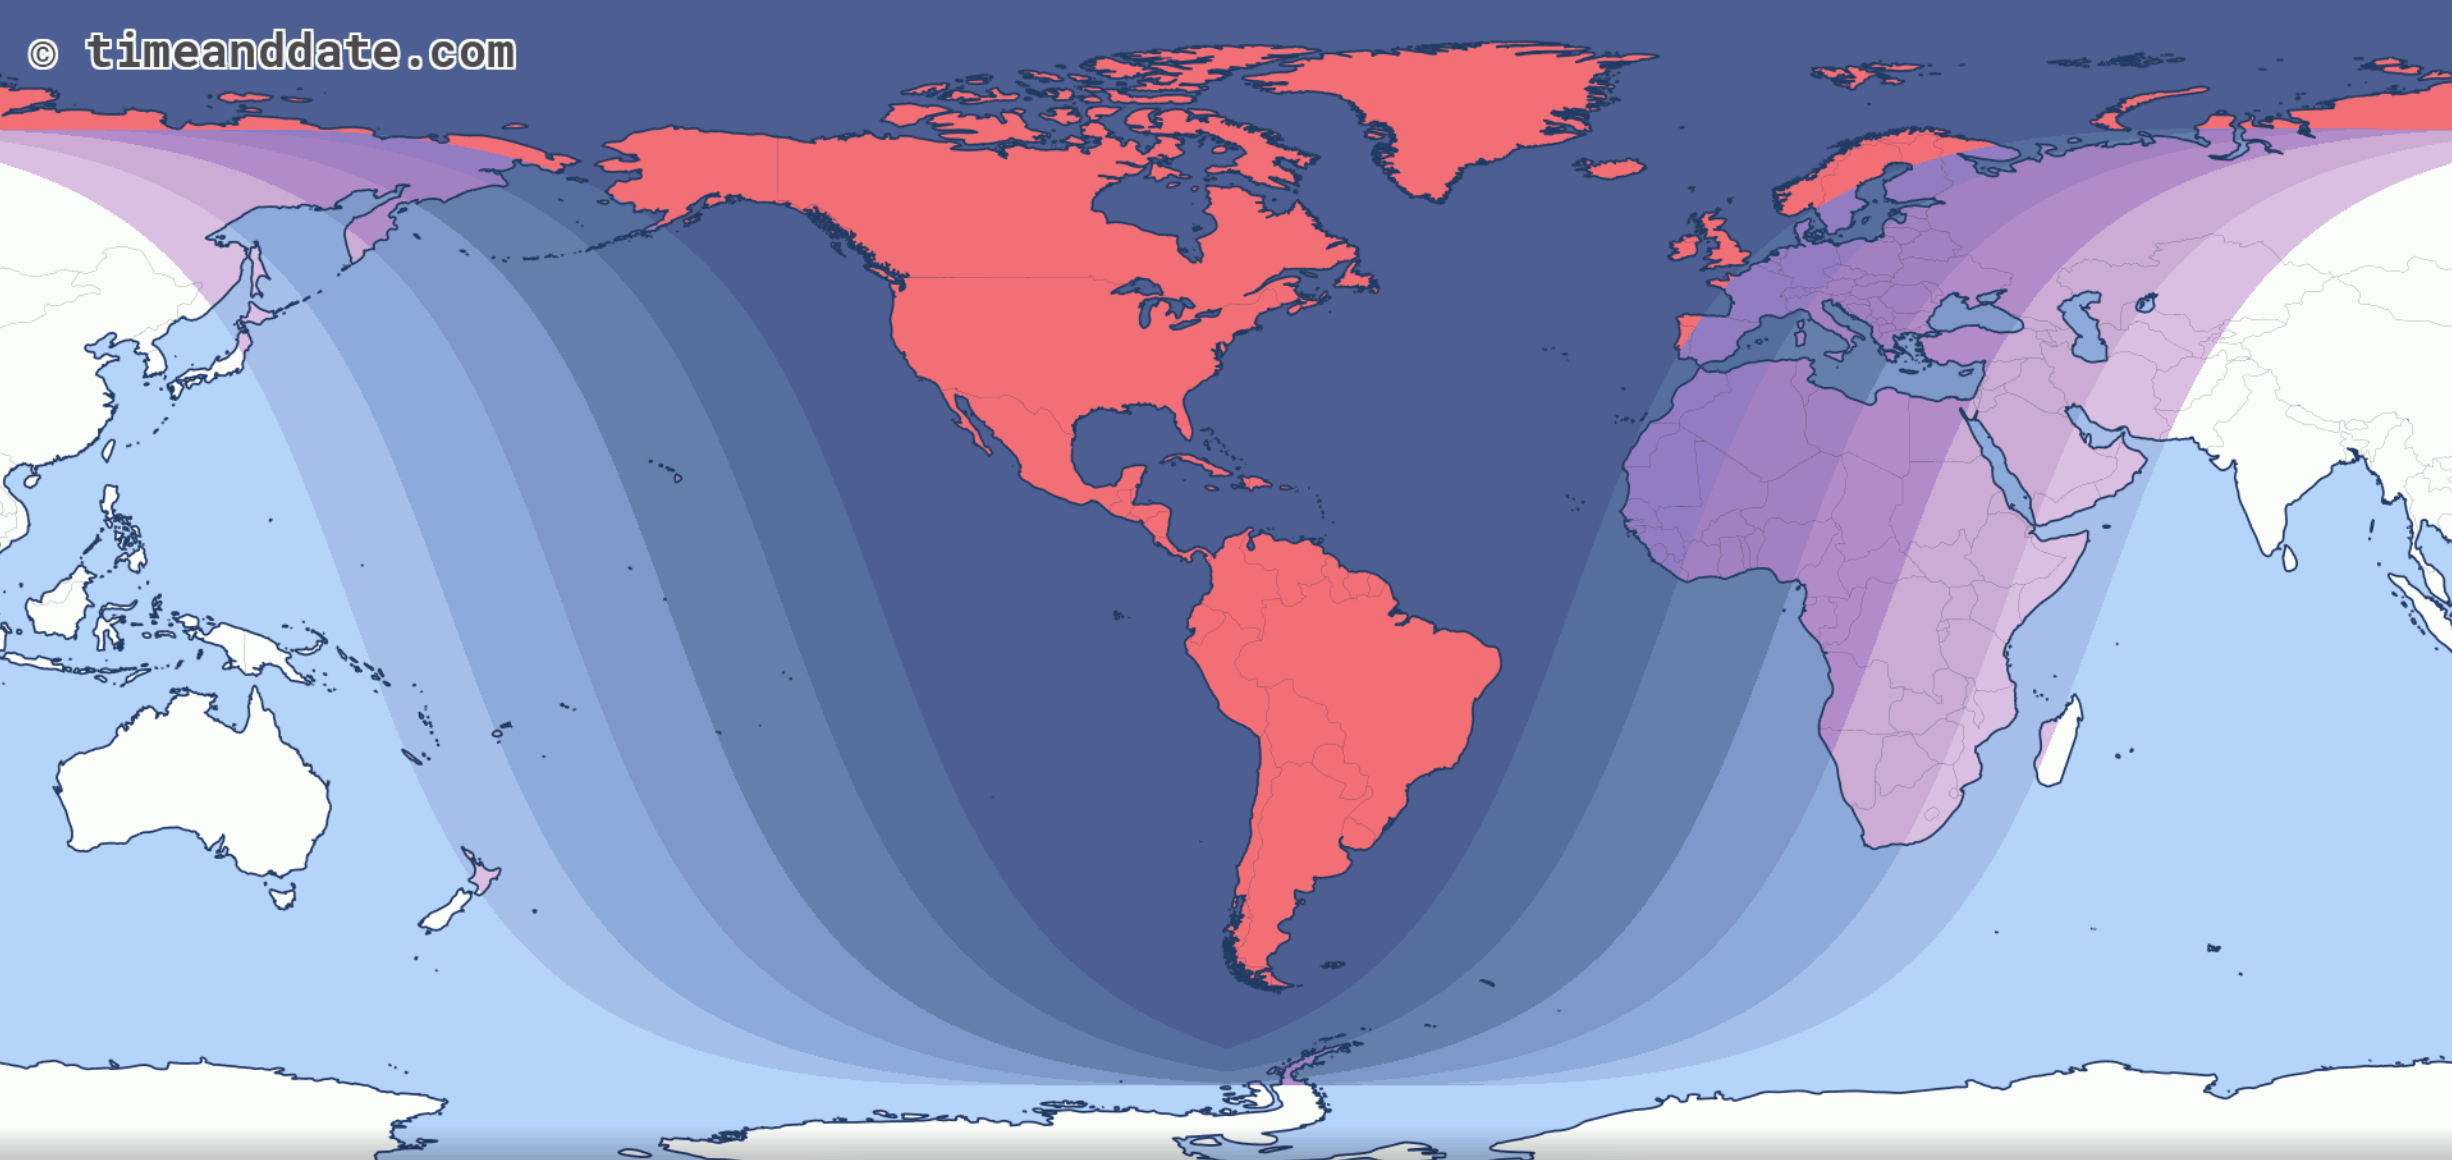 2019 Lunar Eclipse Map